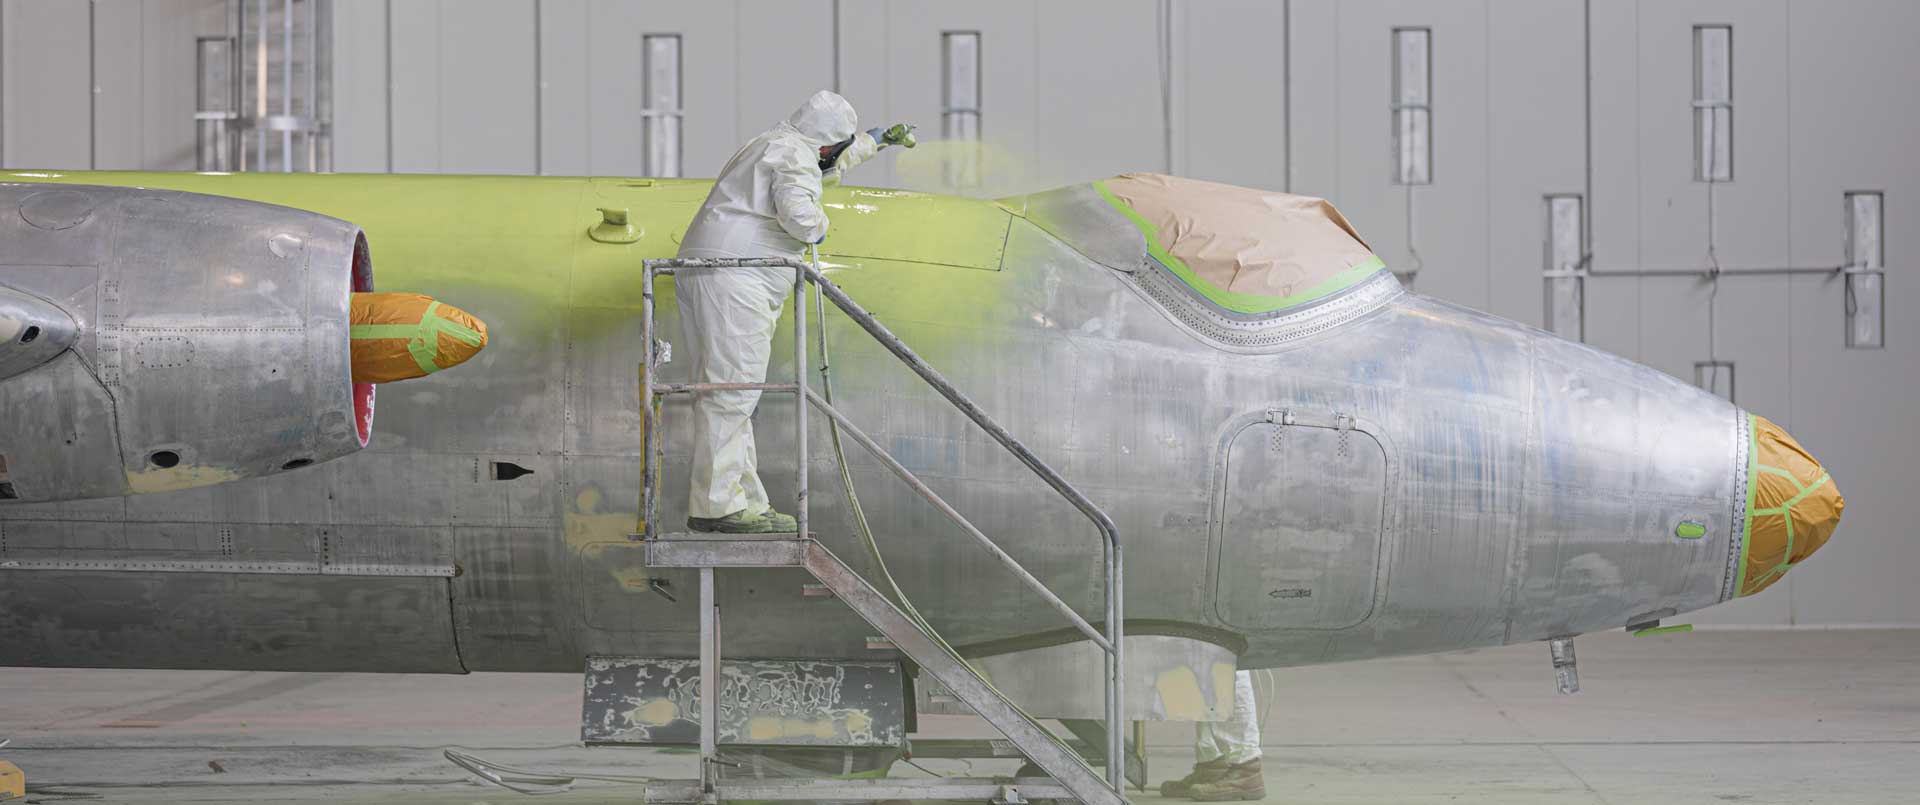 Two aircraft spray painters painting a fixed wing jet